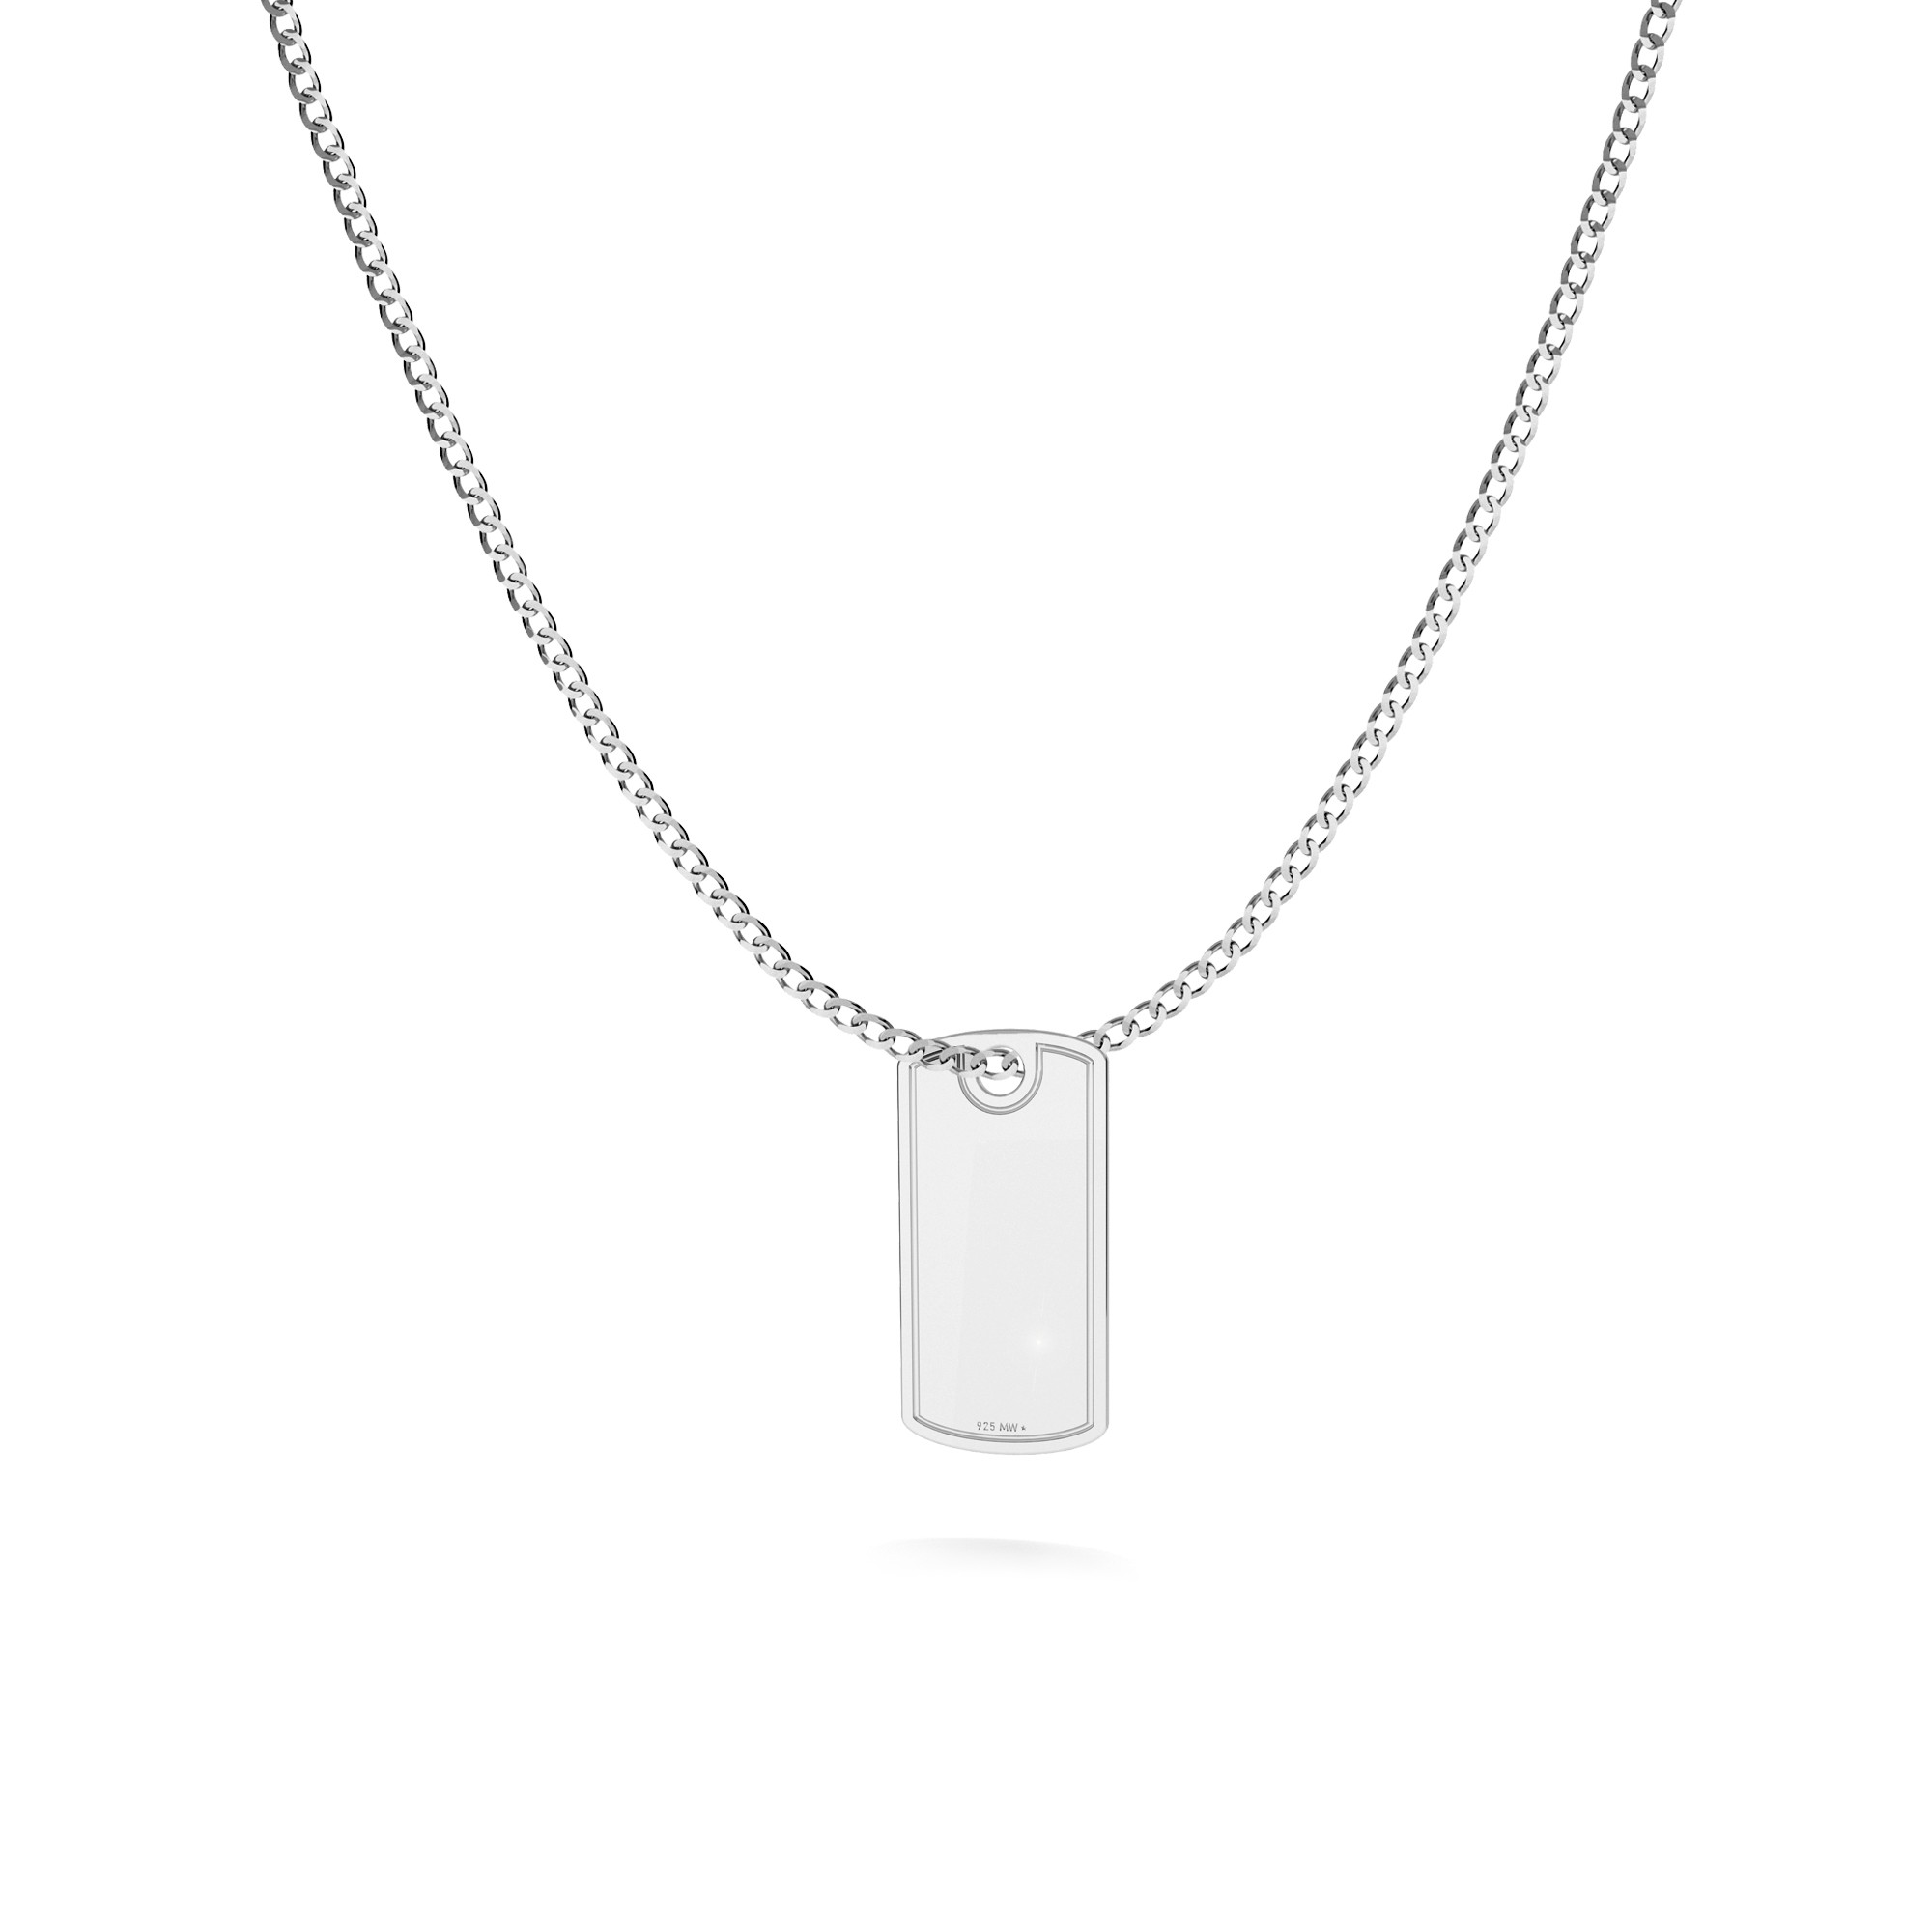 Dog tag with engrave and chain silver 925